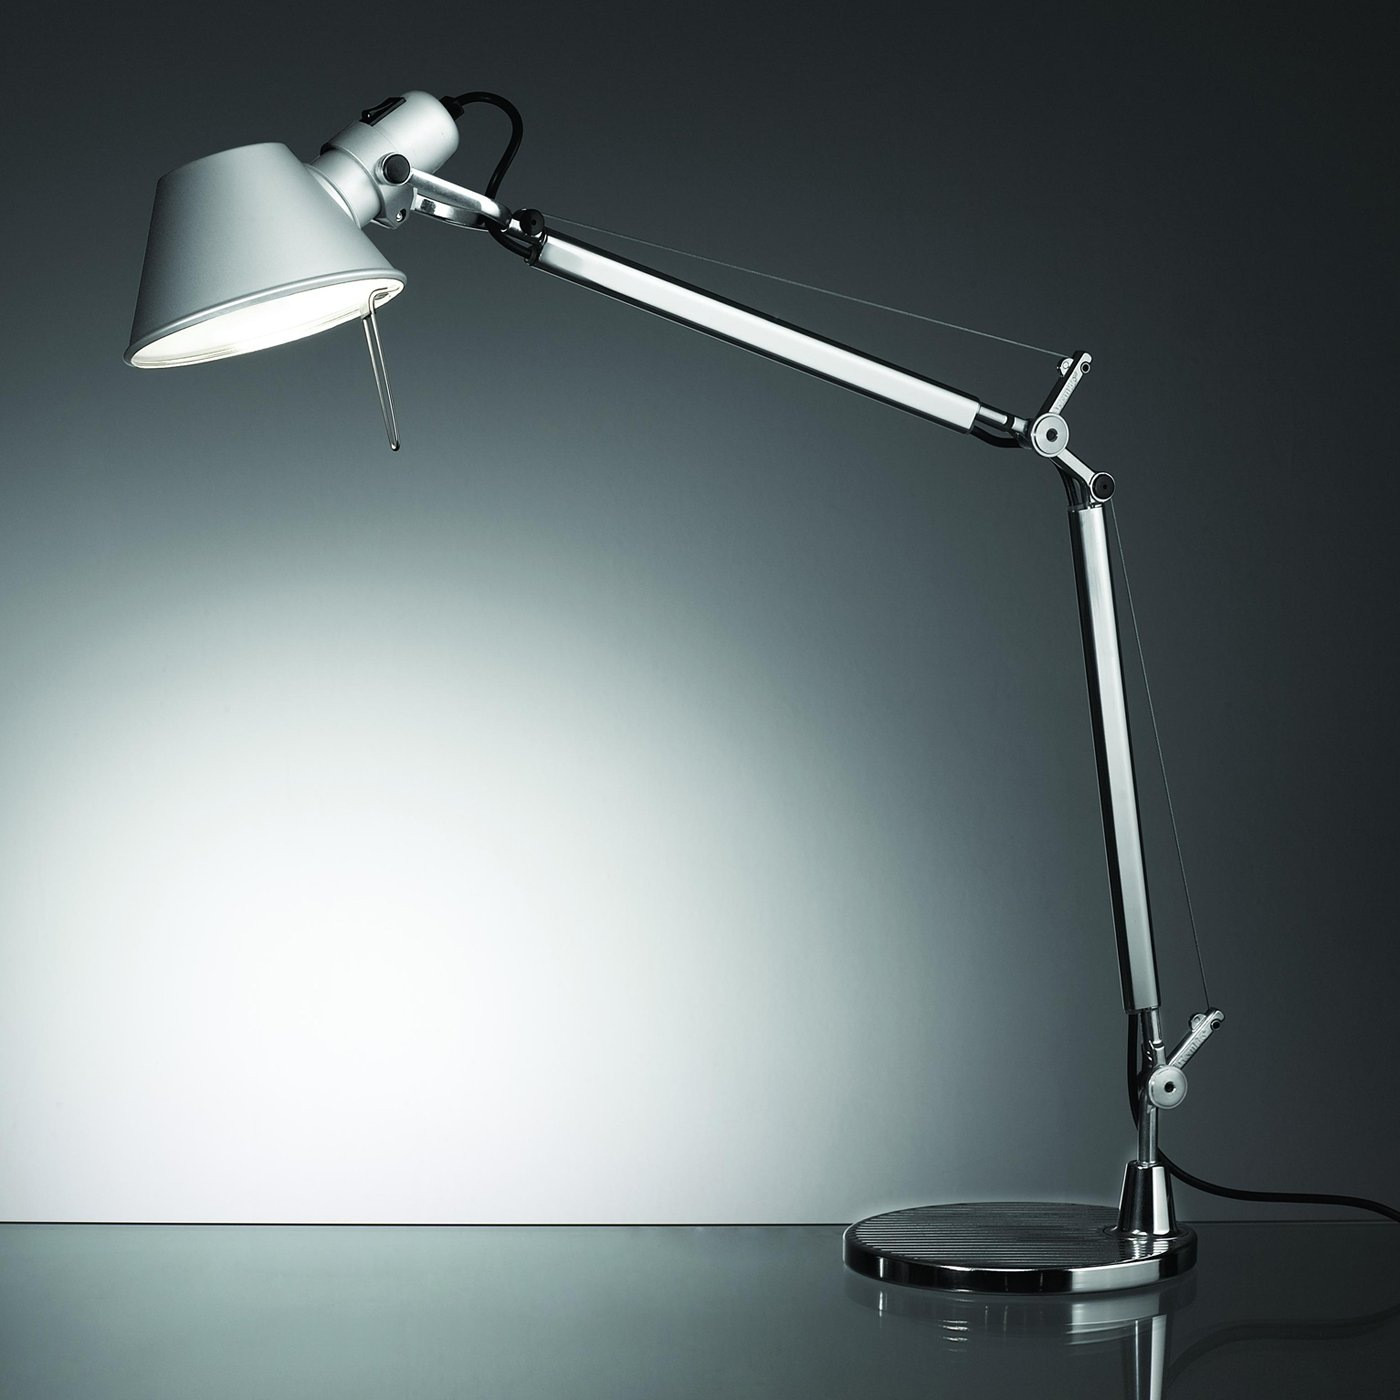 Best ideas about Bright Desk Lamp . Save or Pin JUMMINILED Super Bright Gooseneck Desk Lamp Lights and Lamps Now.